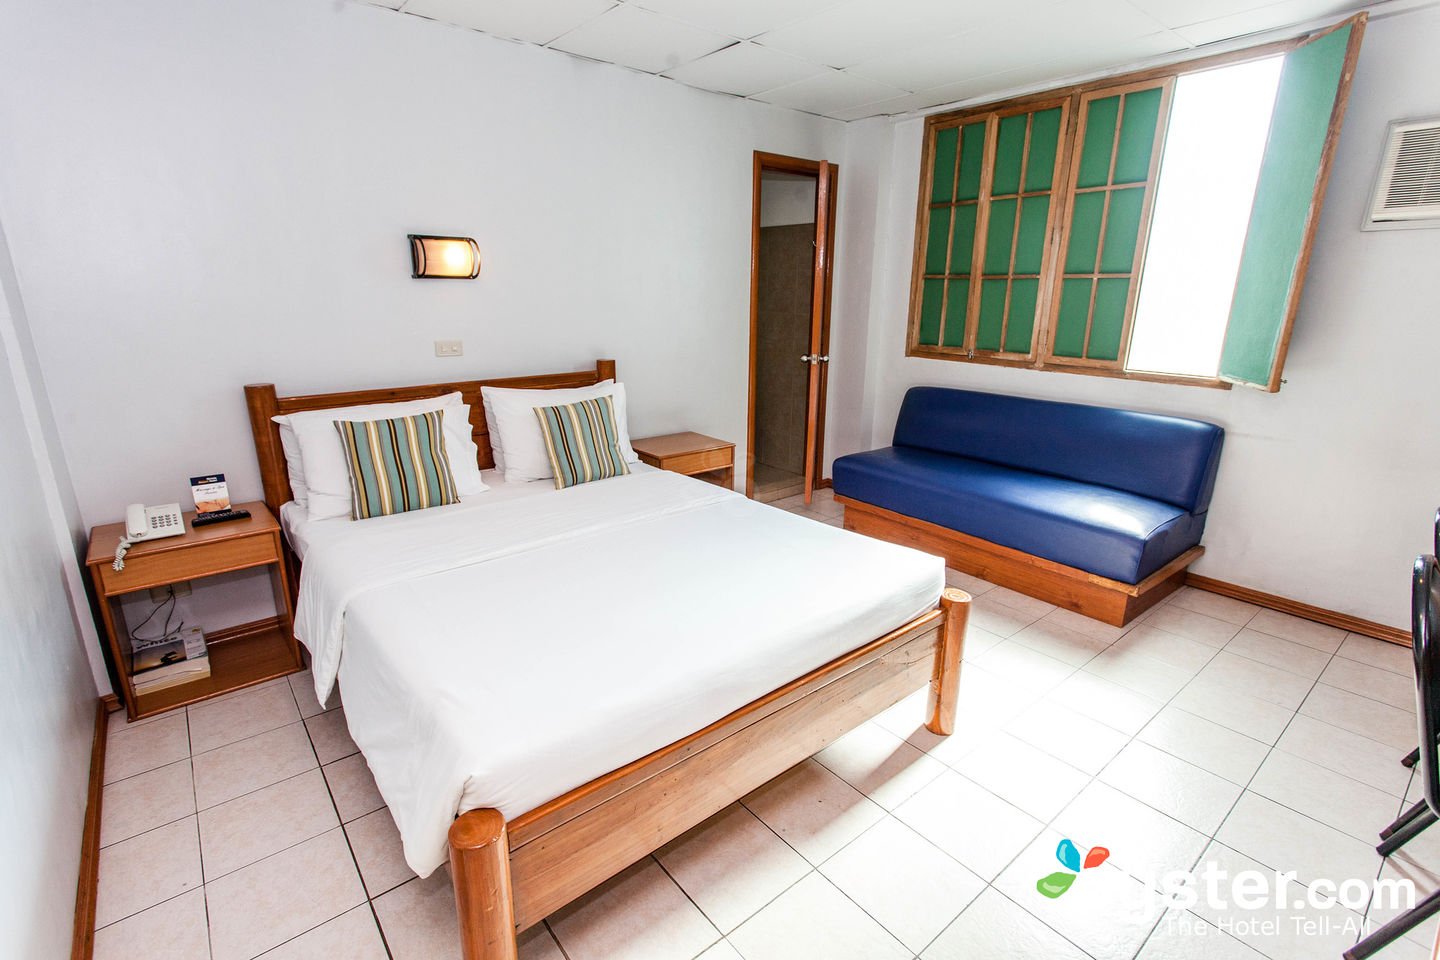 Nichols Airport Hotel Review What To REALLY Expect If You Stay